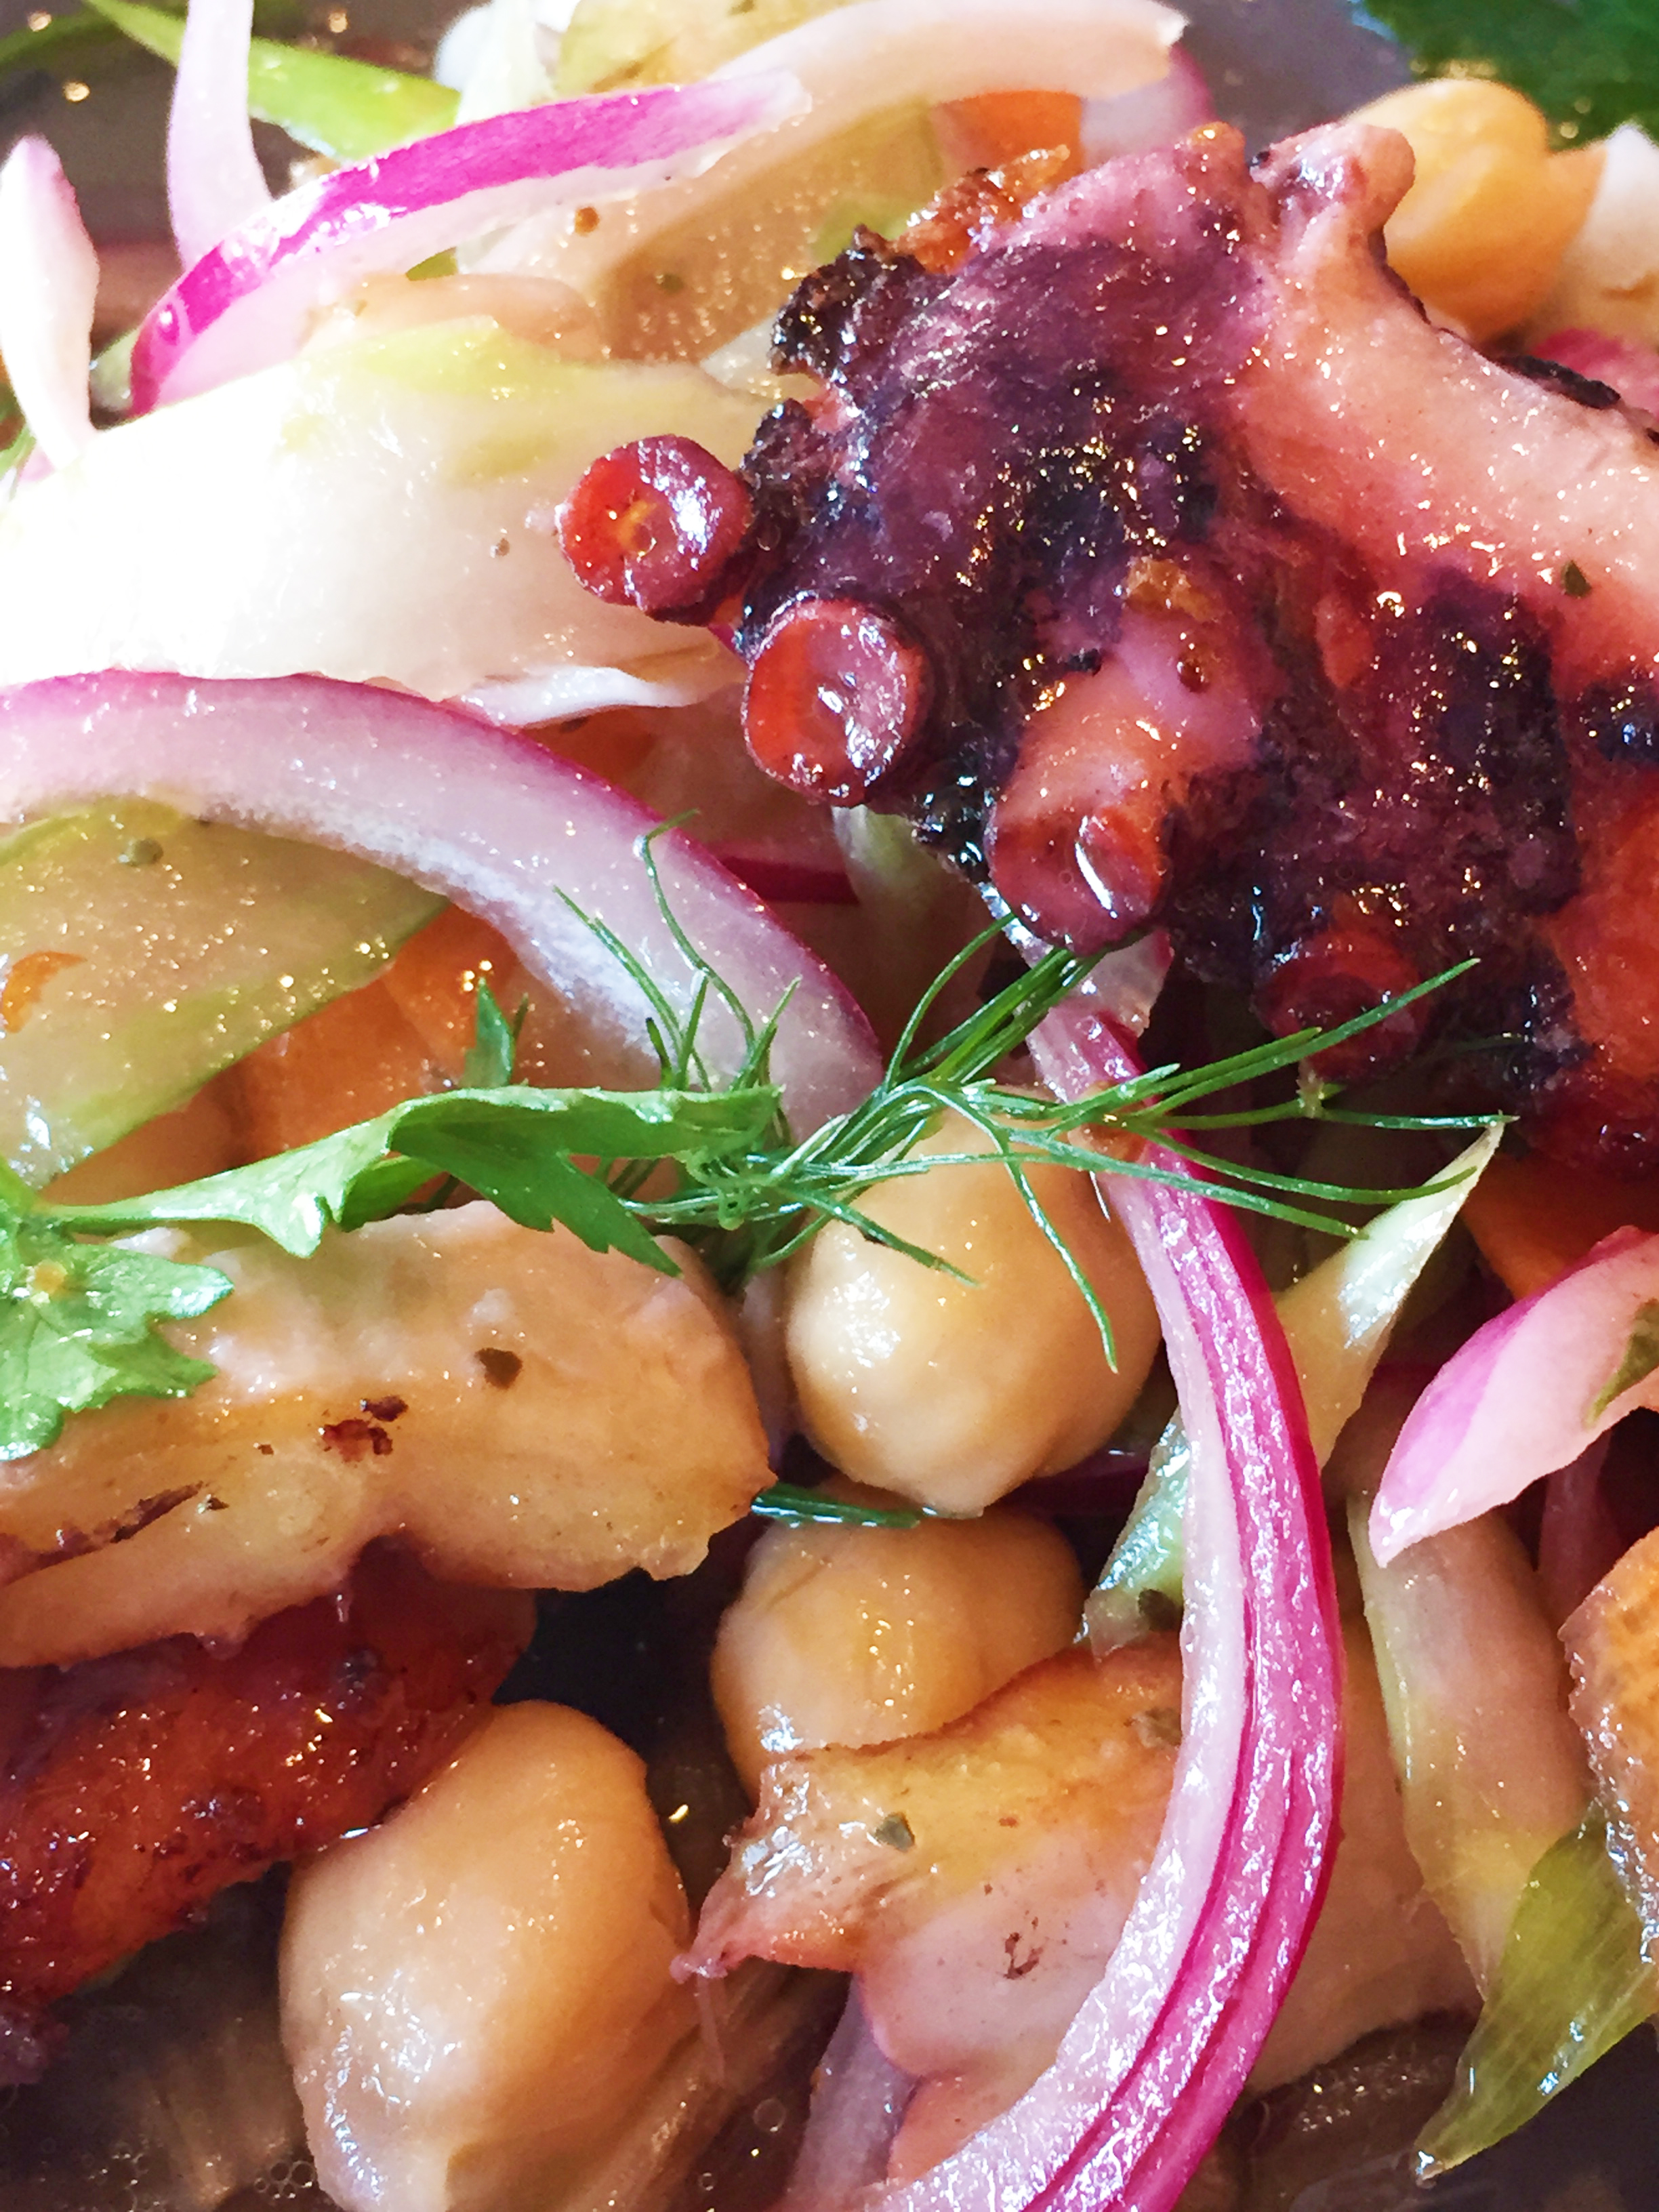 Seared Octopus Salad with Mirepoix and Chili.